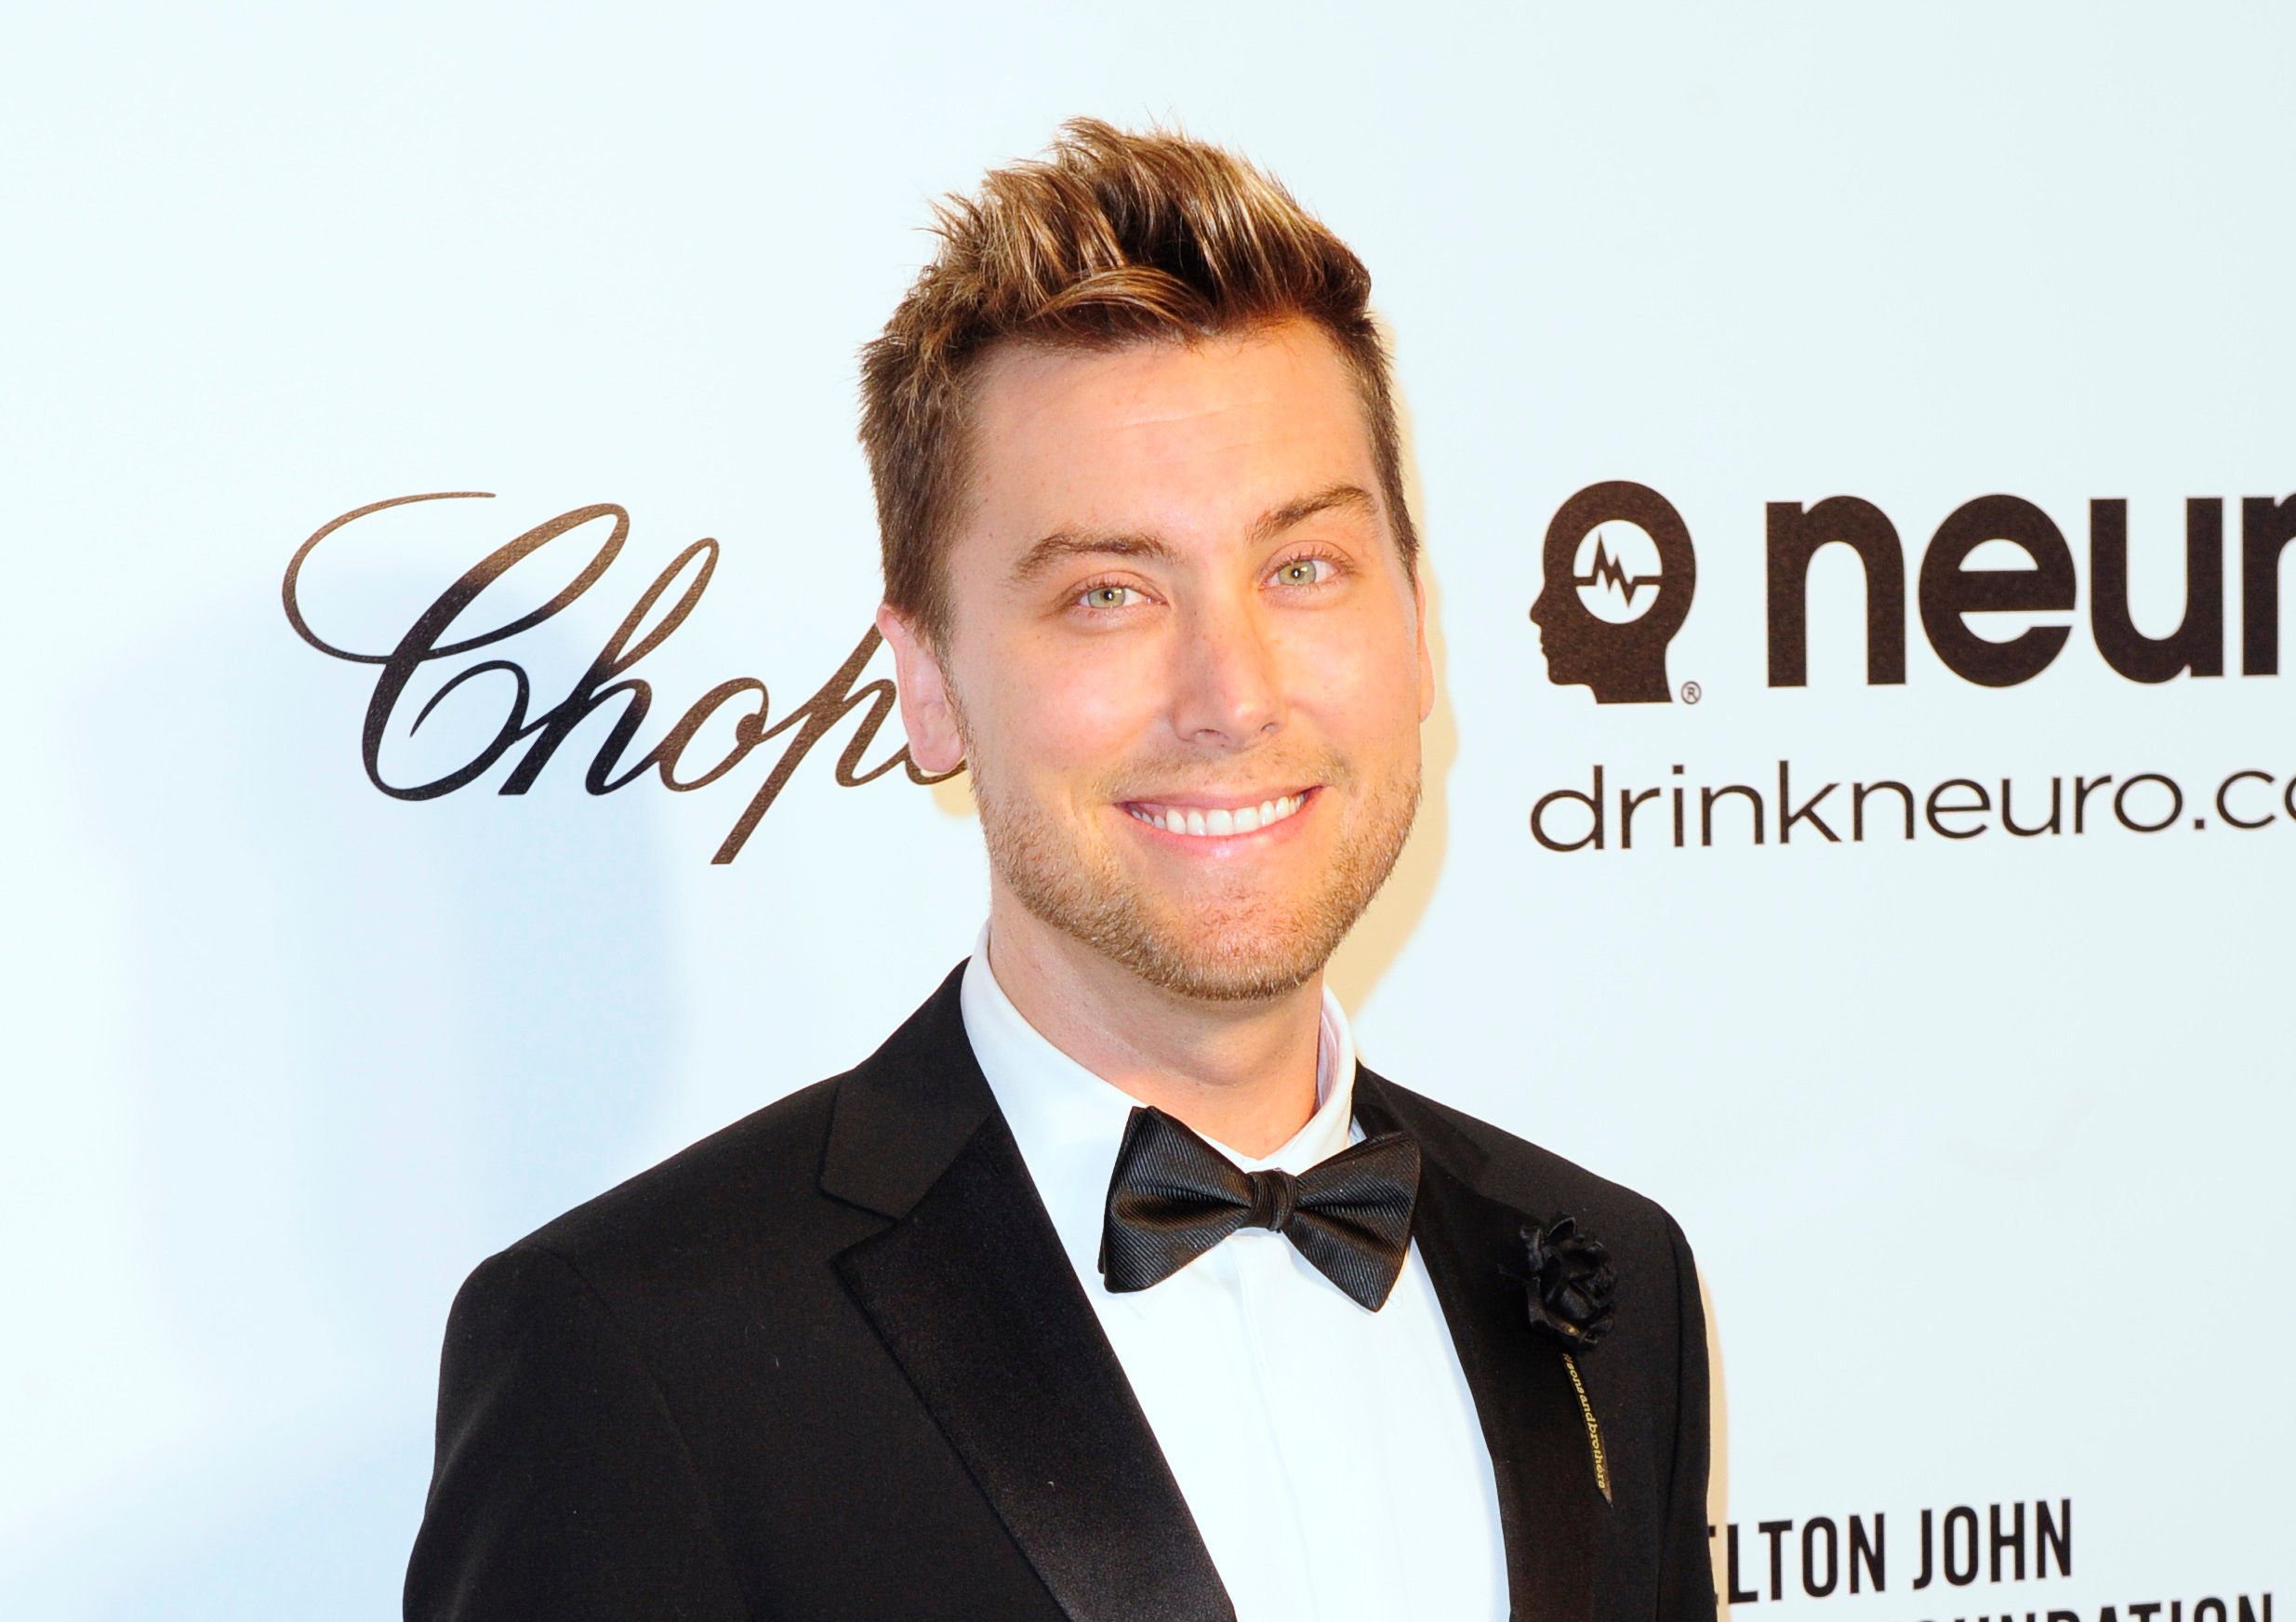 Pop singer Lance Bass arrives at the 2014 Elton John AIDS Foundation Oscar Party in West Hollywood, California March 2, 2014. REUTERS/Gus Ruelas (UNITED STATES TAGS: ENTERTAINMENT) (OSCARS-PARTIES)